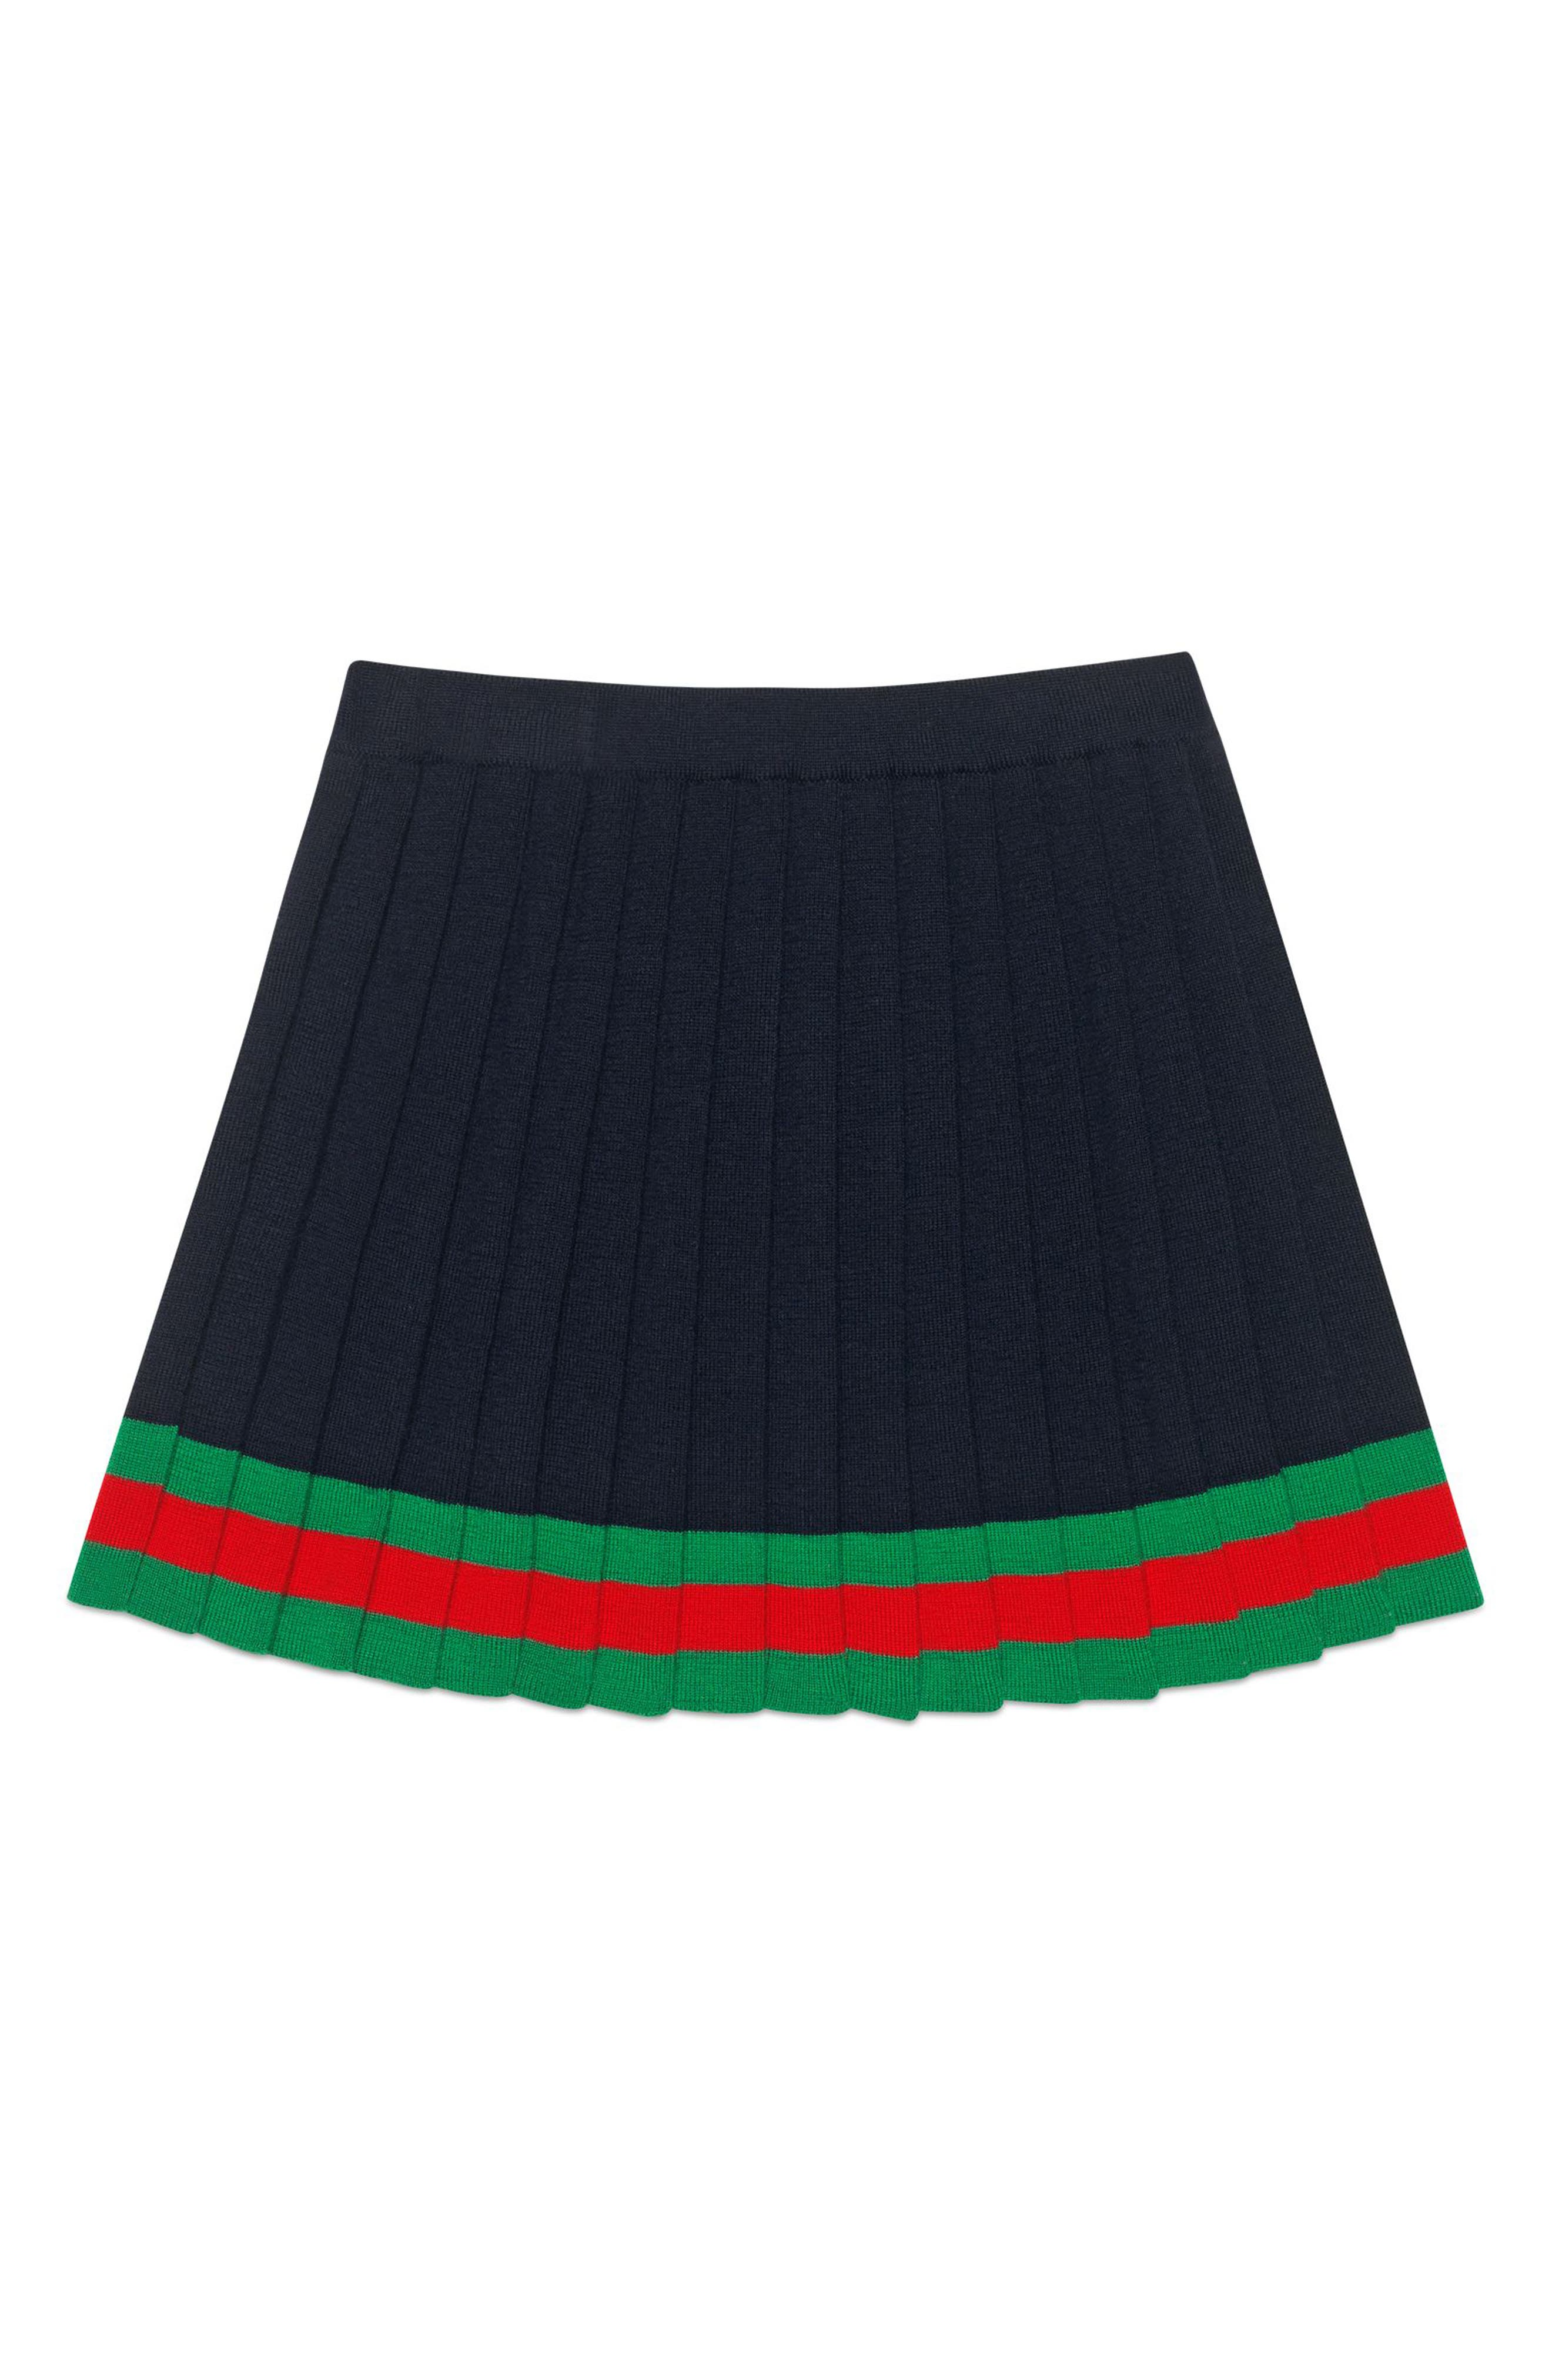 Pleated Wool Knit Skirt,                             Main thumbnail 1, color,                             NAVY/ SHAMROCK/ L.RED